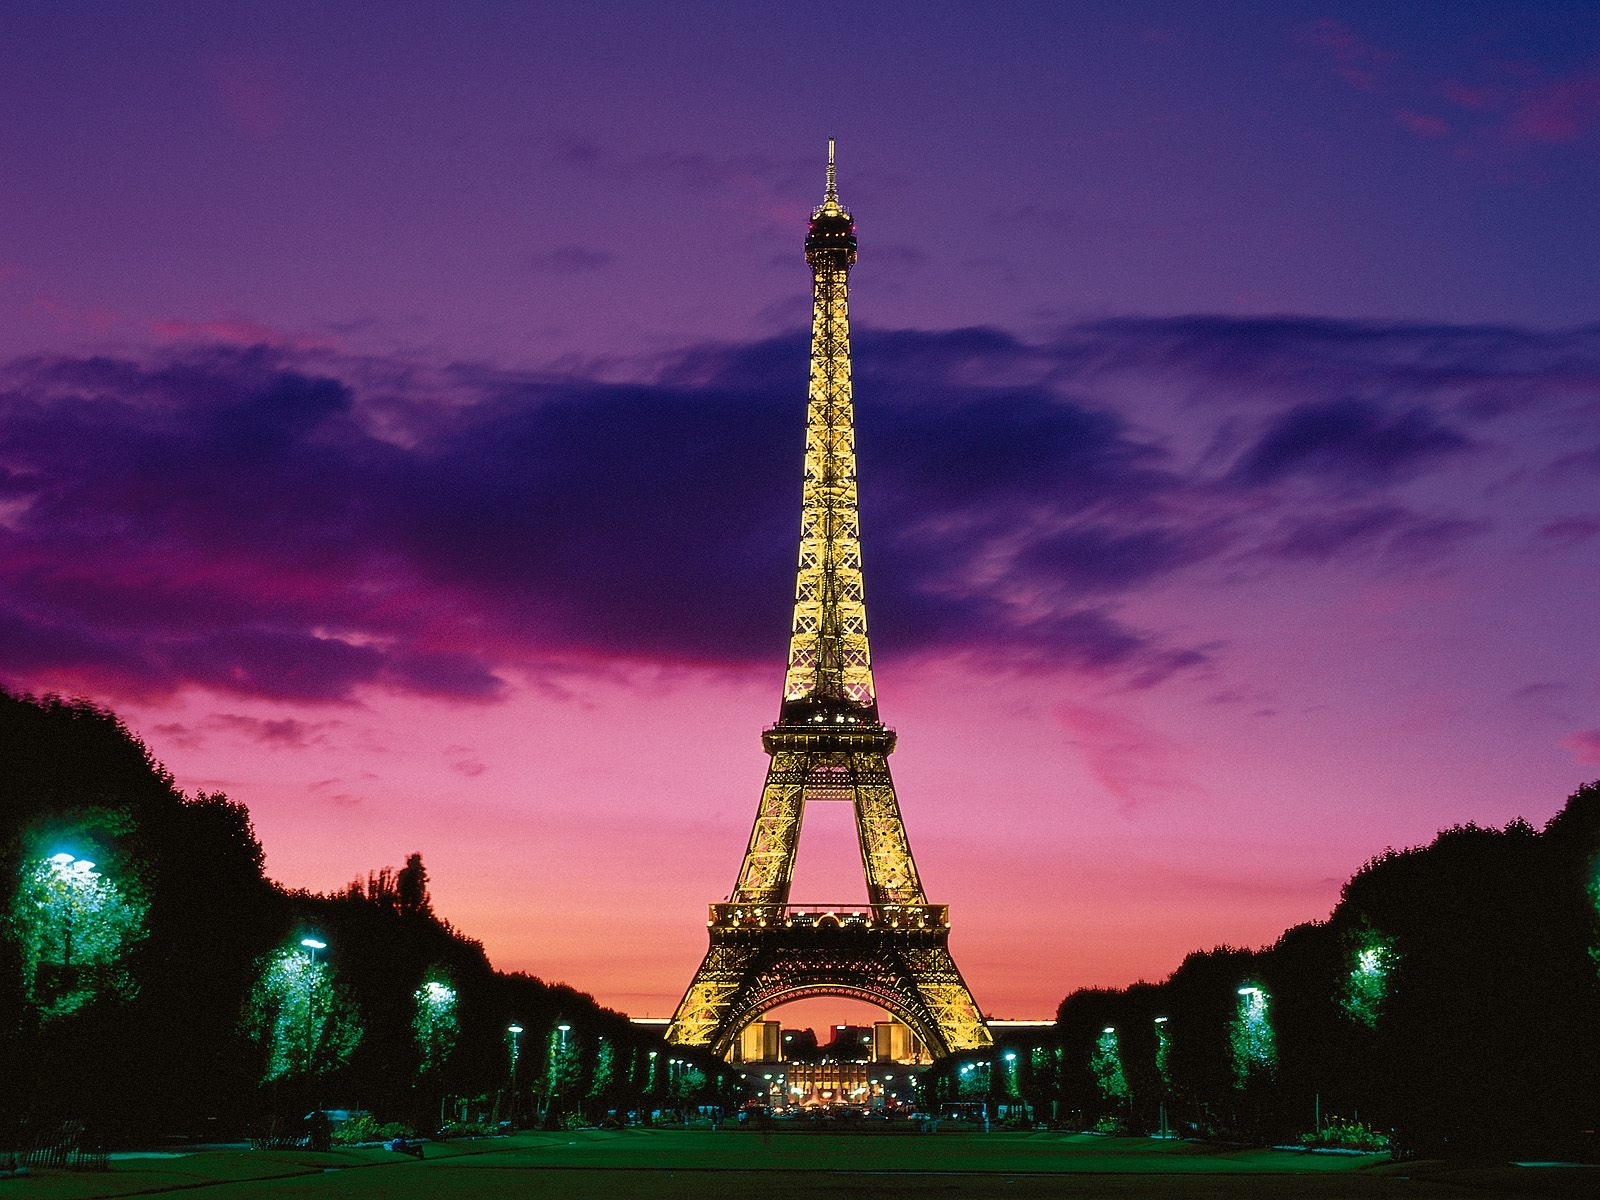 eiffel tower at night paris france wallpapers | hd wallpapers | id #6019